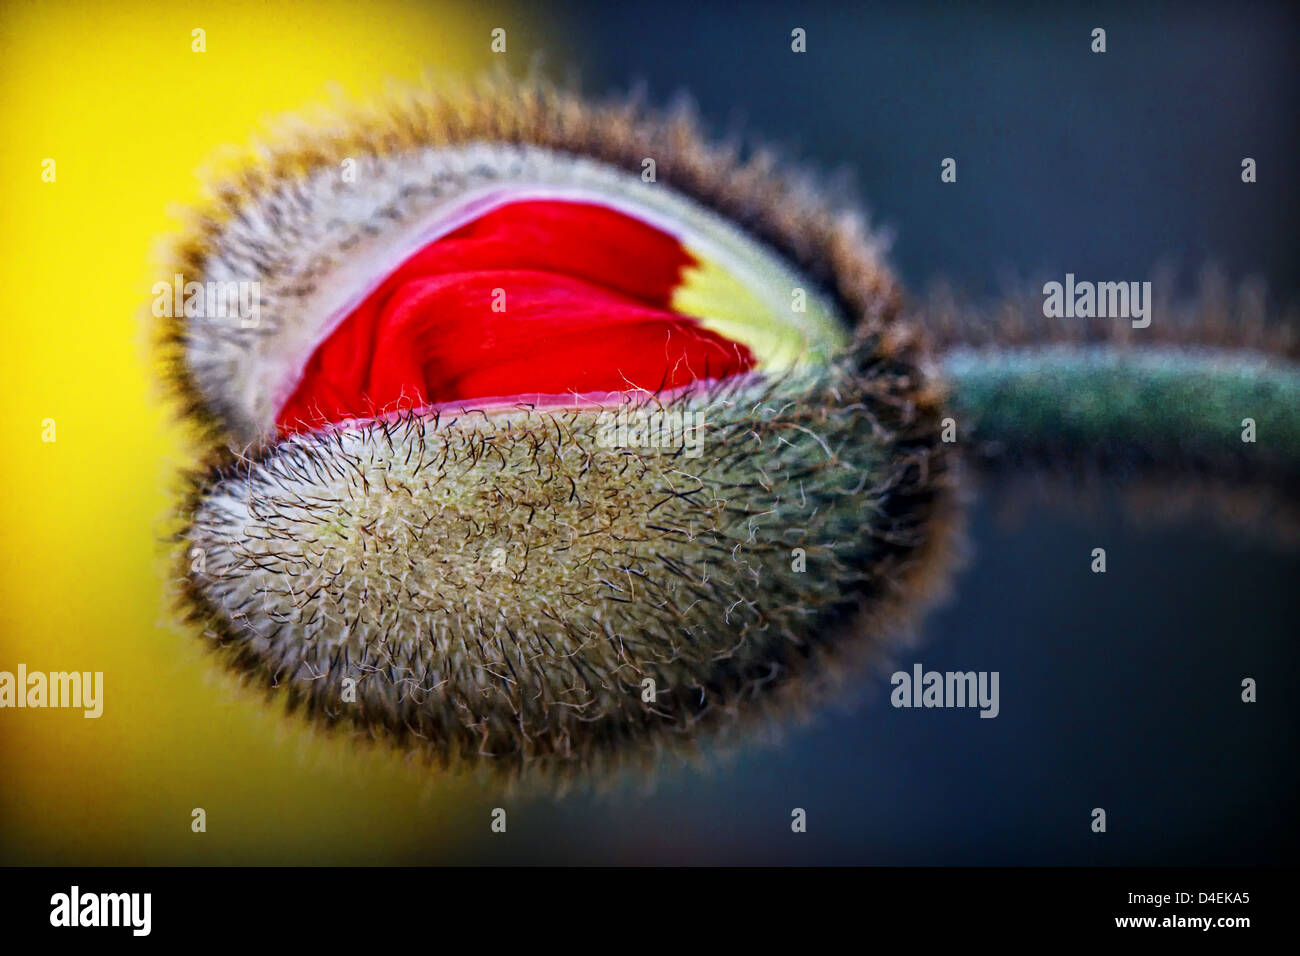 USA. Stock image of an red Iceland poppy bud, that is ready to bloom. - Stock Image